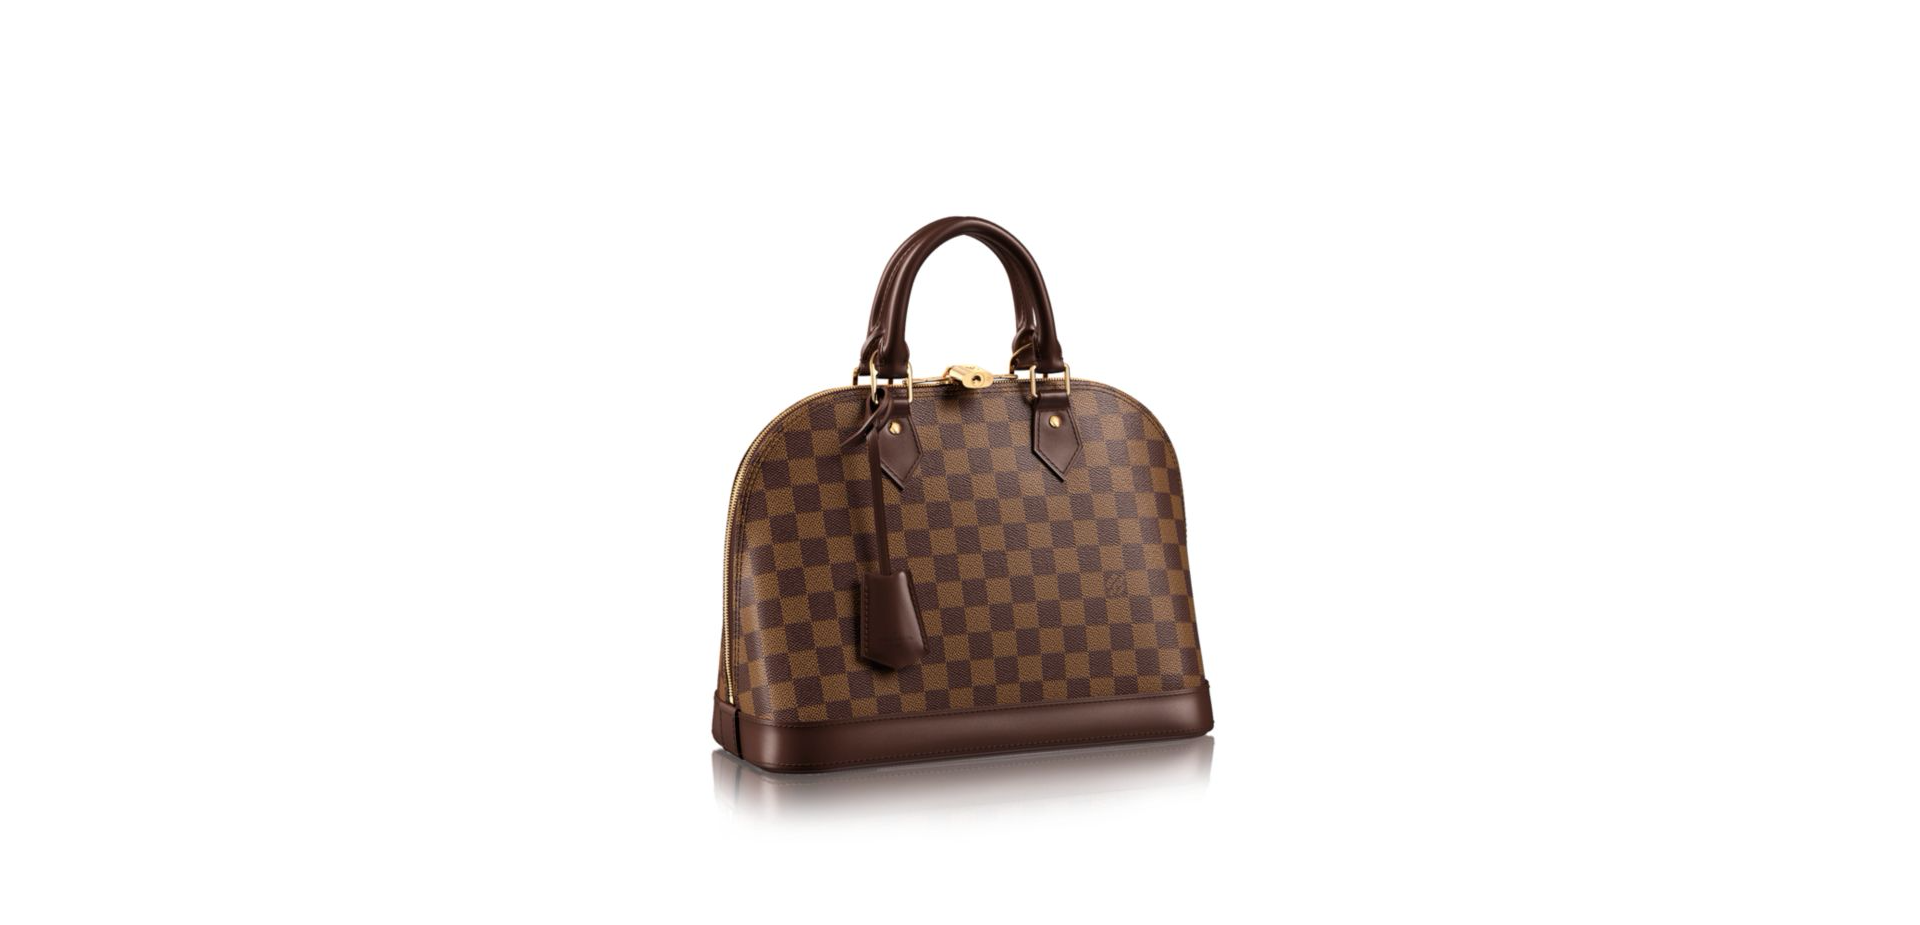 Hot selling women handbag LV handbag louis vuitton bag